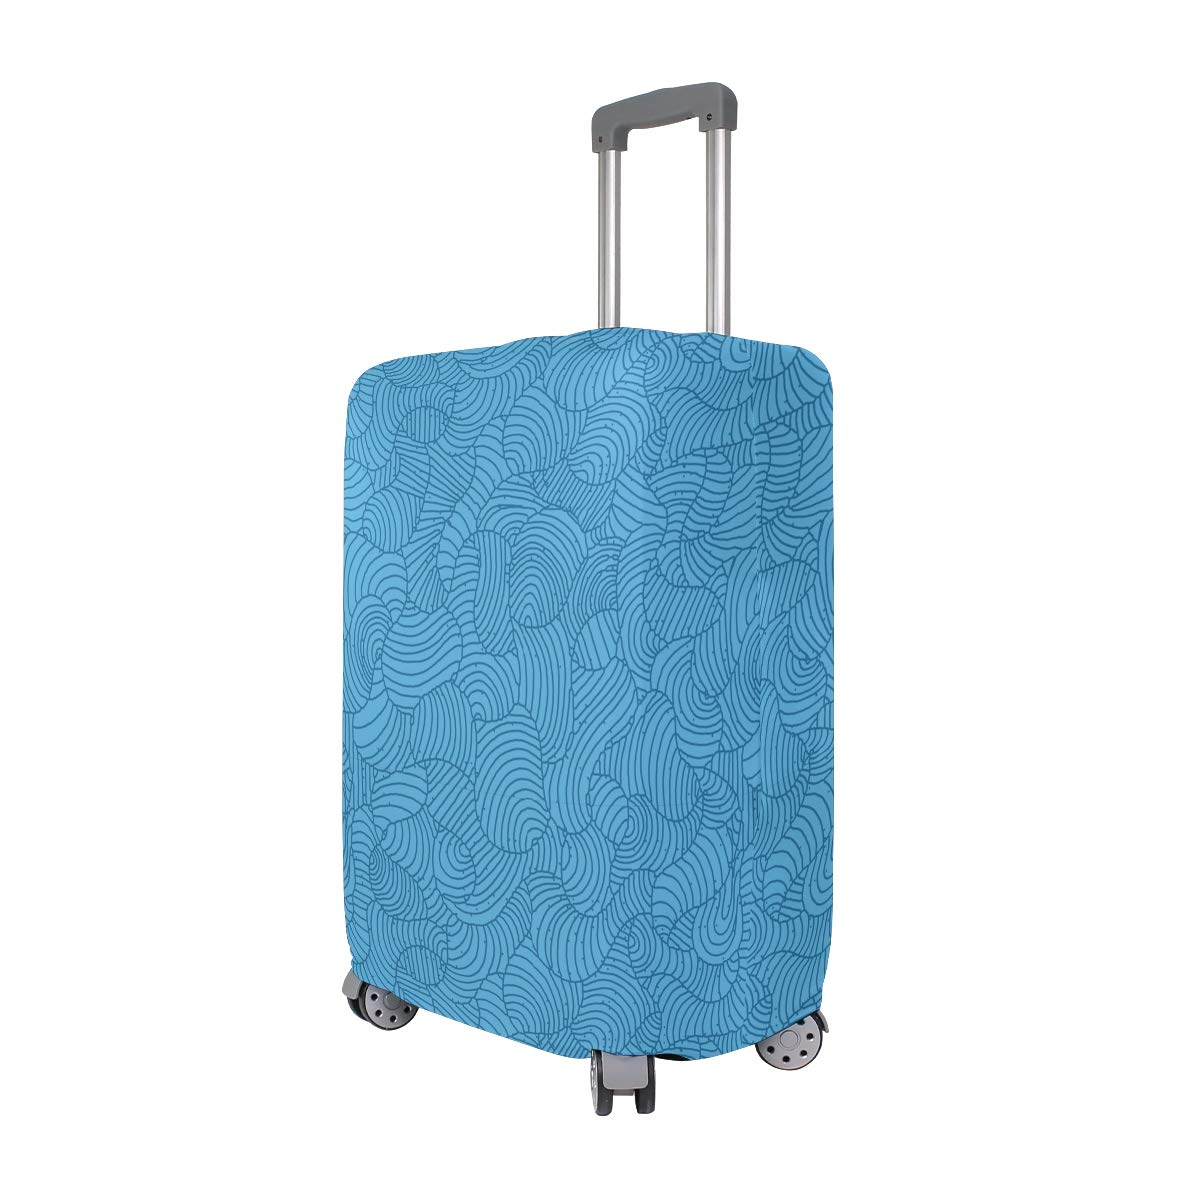 Blue Closed Abstract Lines Traveler Lightweight Rotating Luggage Protector Case Can Carry With You Can Expand Travel Bag Trolley Rolling Luggage Protector Case